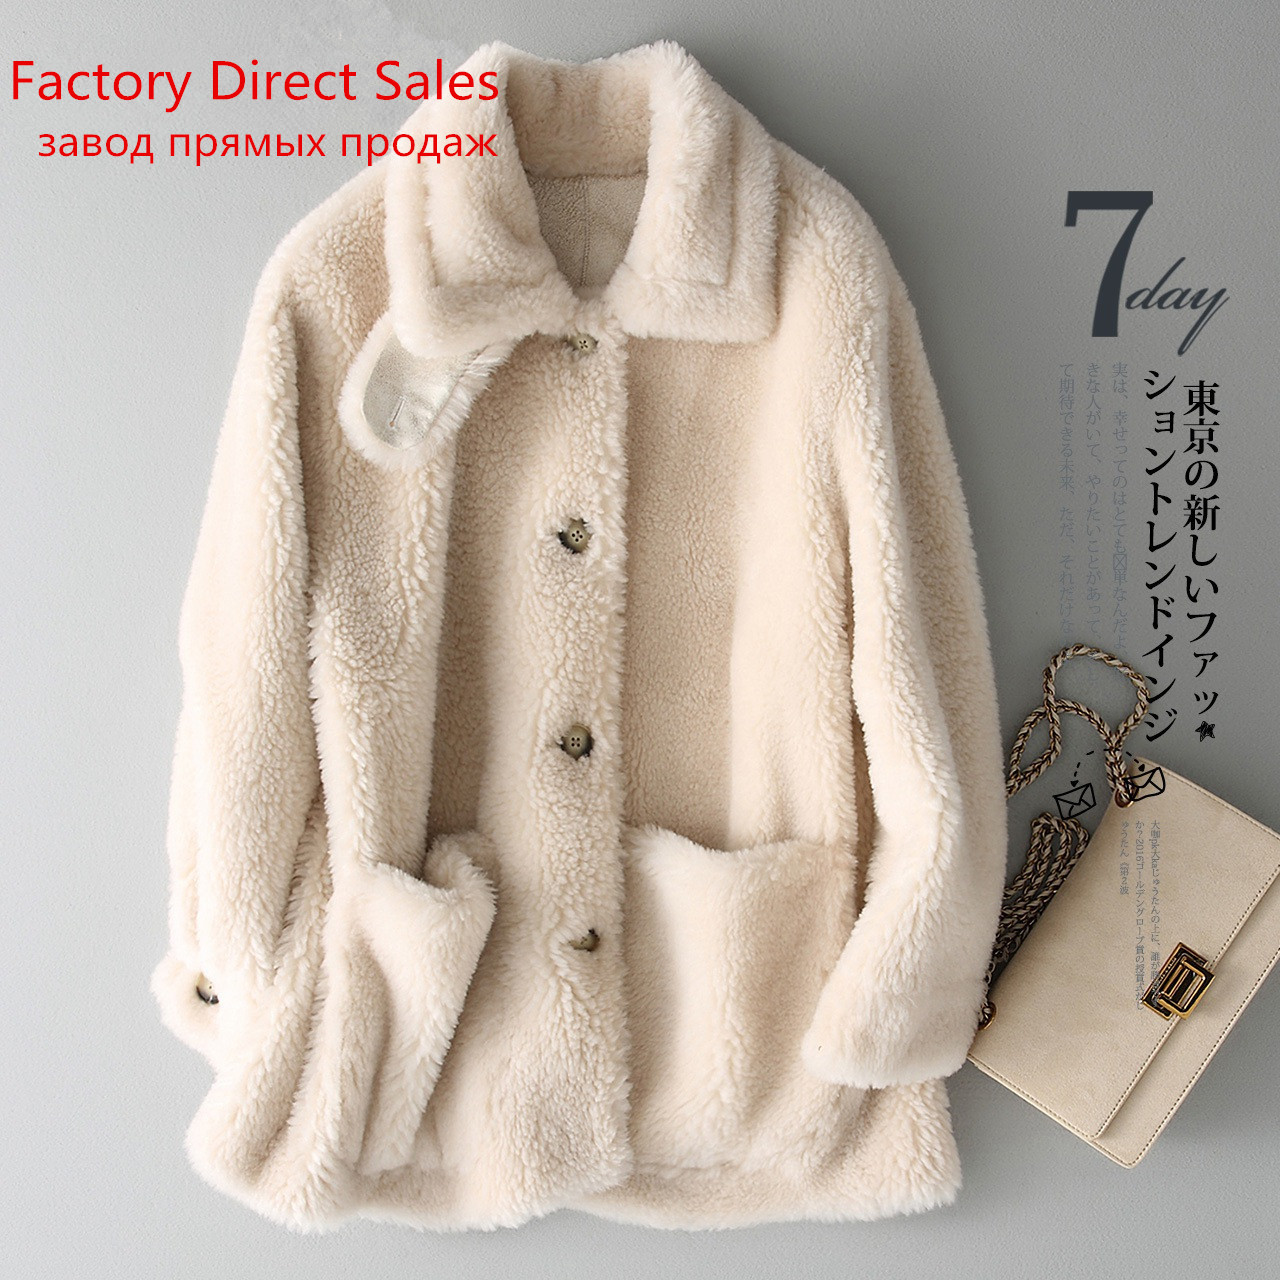 Coat Wool 100% Female Real Sheep Shearling Fur Jacket 2020 Autumn Winter Jacket Women Korean Outwear Suede Lining MY3659